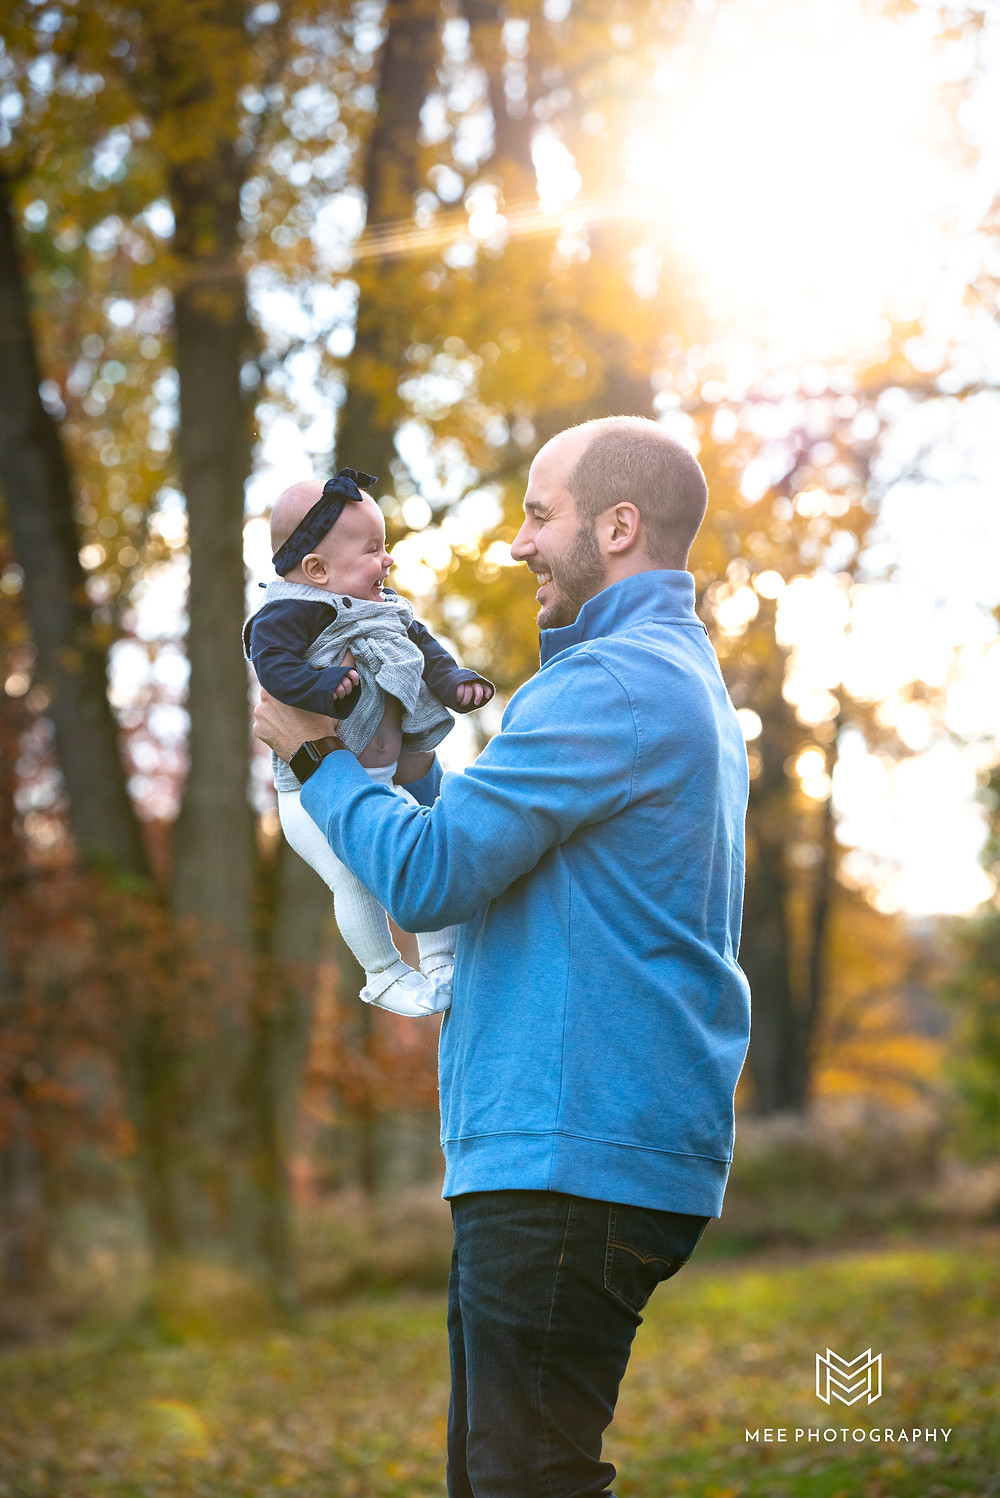 Dad holding baby in the fall sunlight at South Park, PA